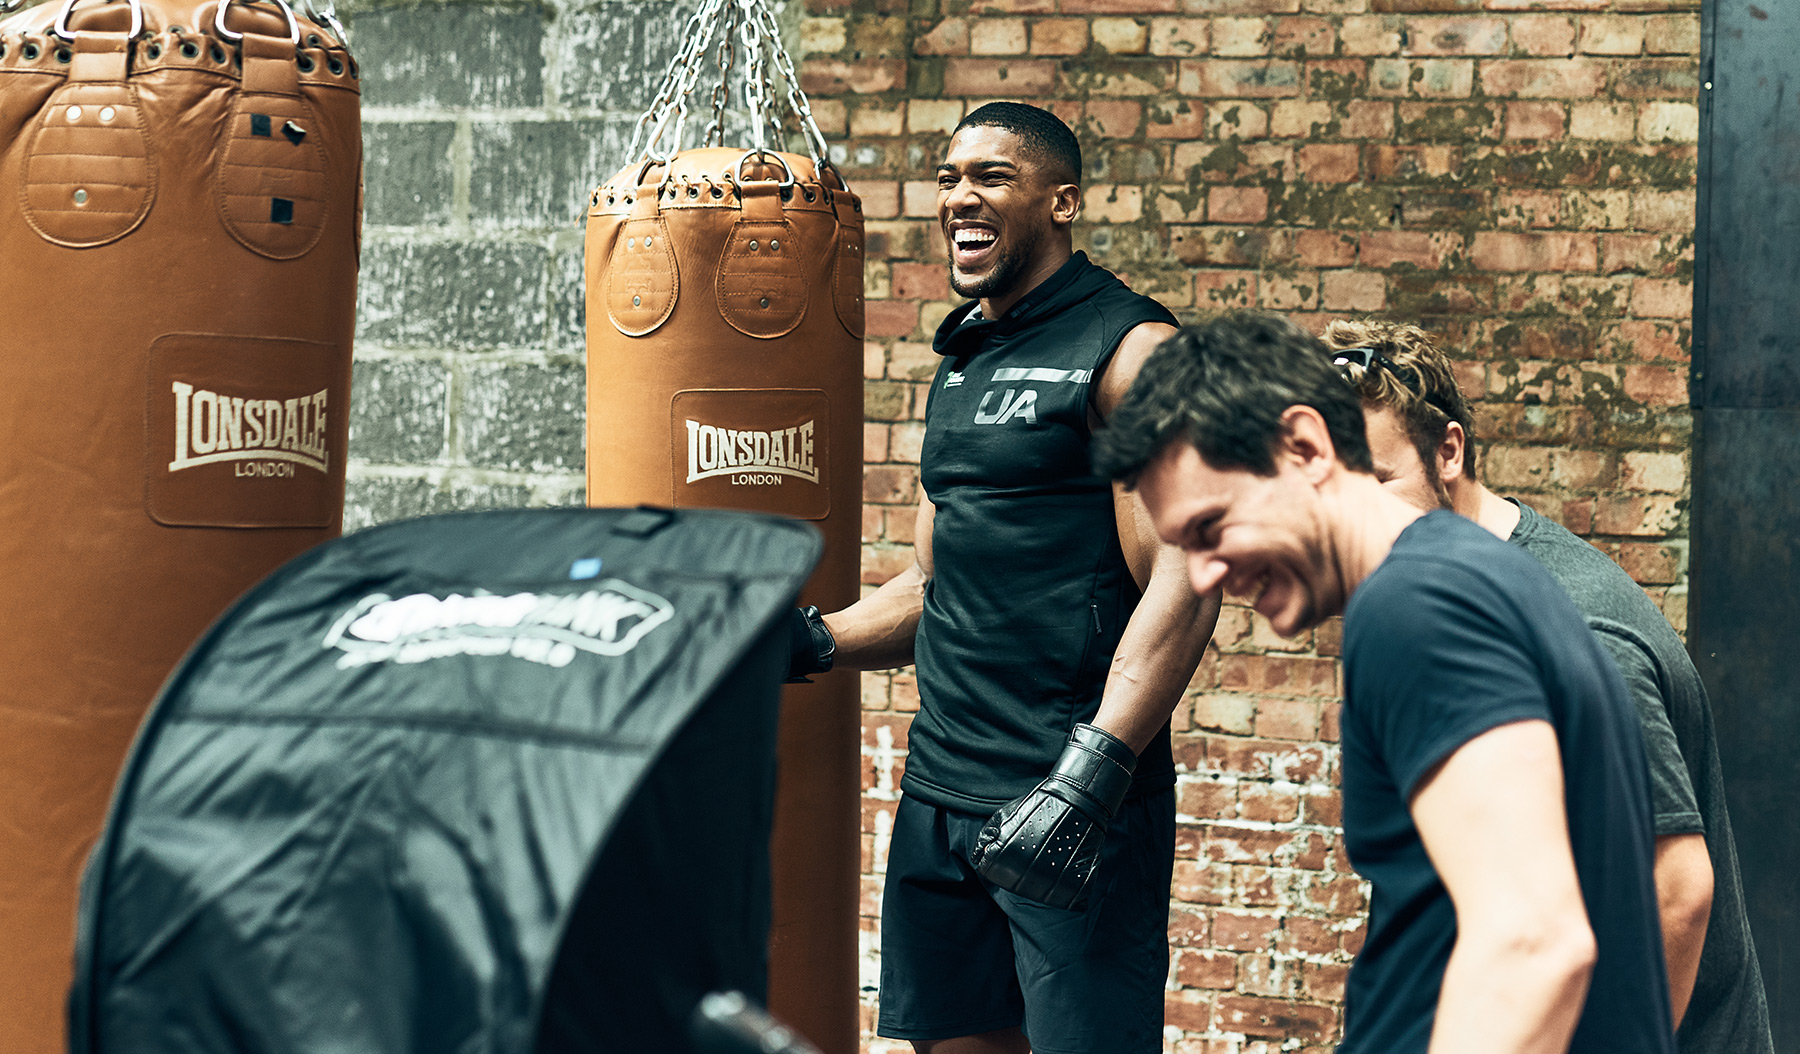 Behind the scenes on our photoshoot with Anthony Joshua